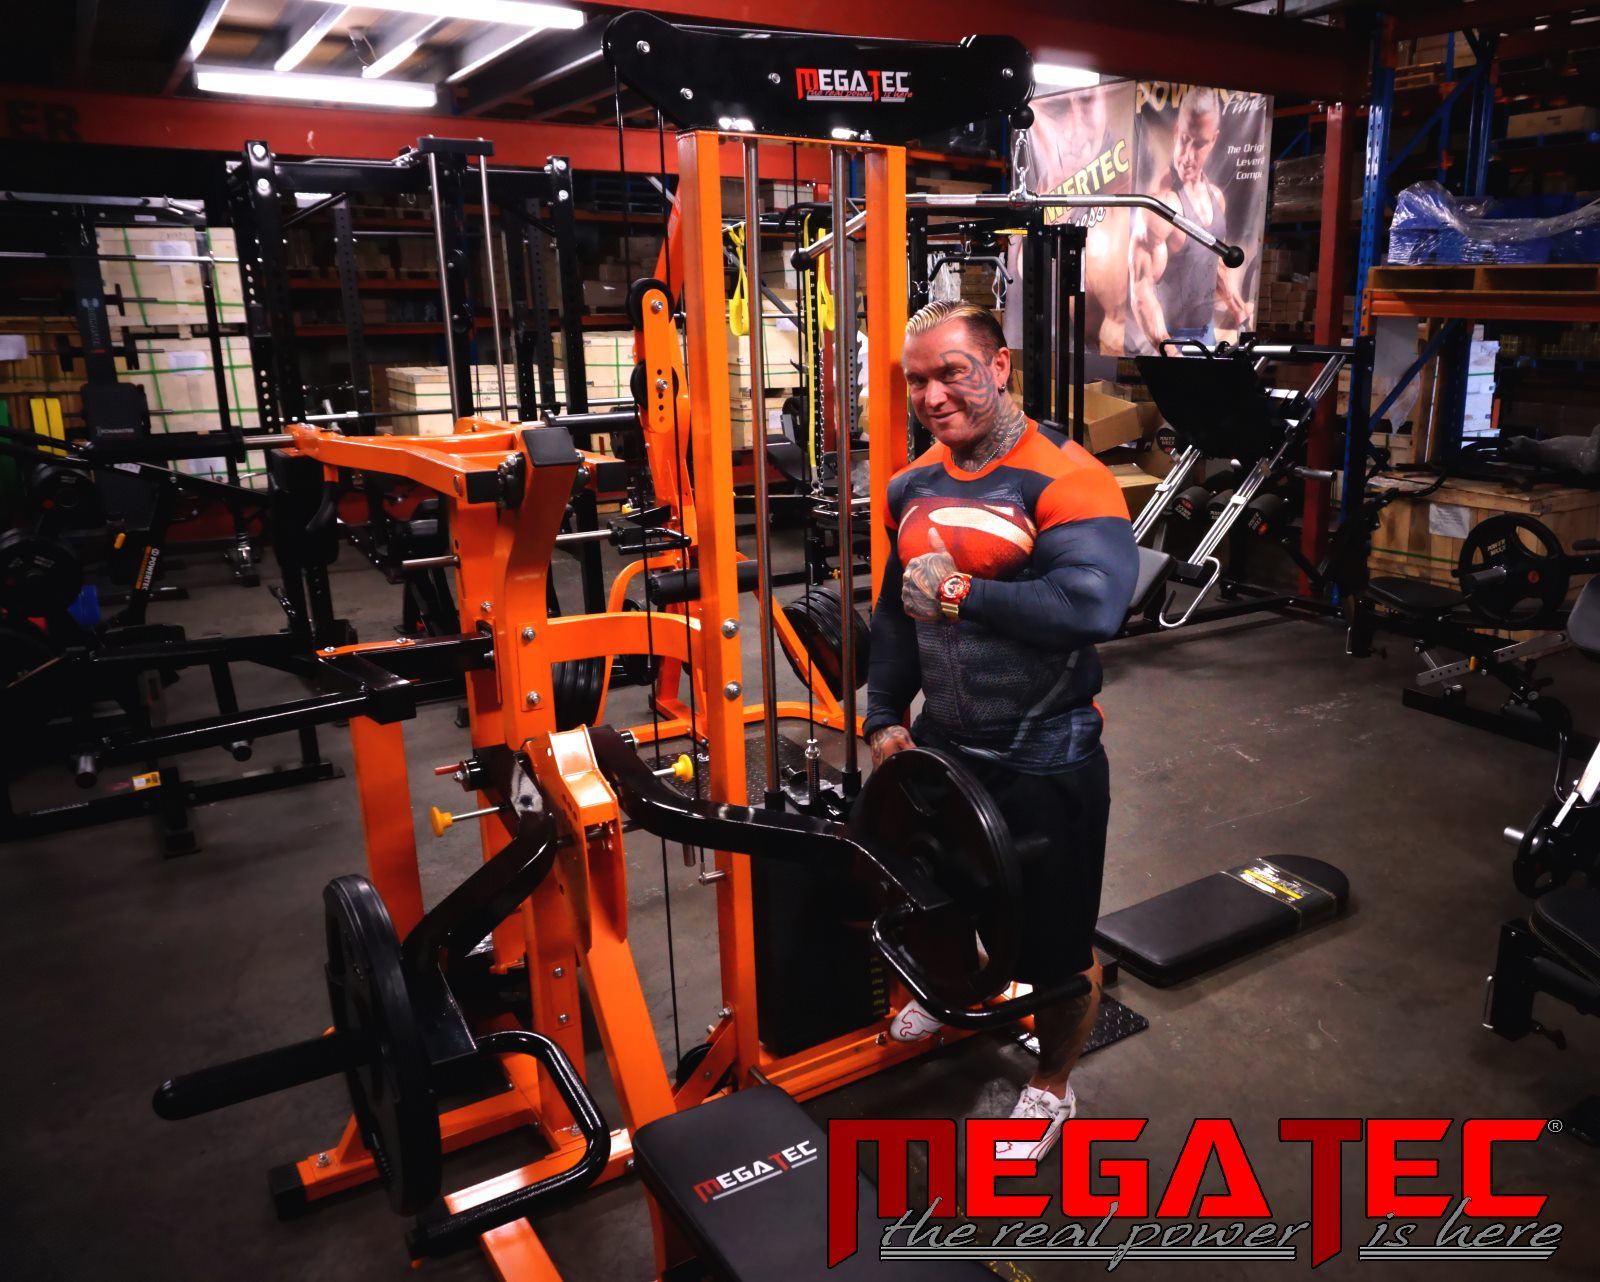 MegaTec multistation Mr Universe approved